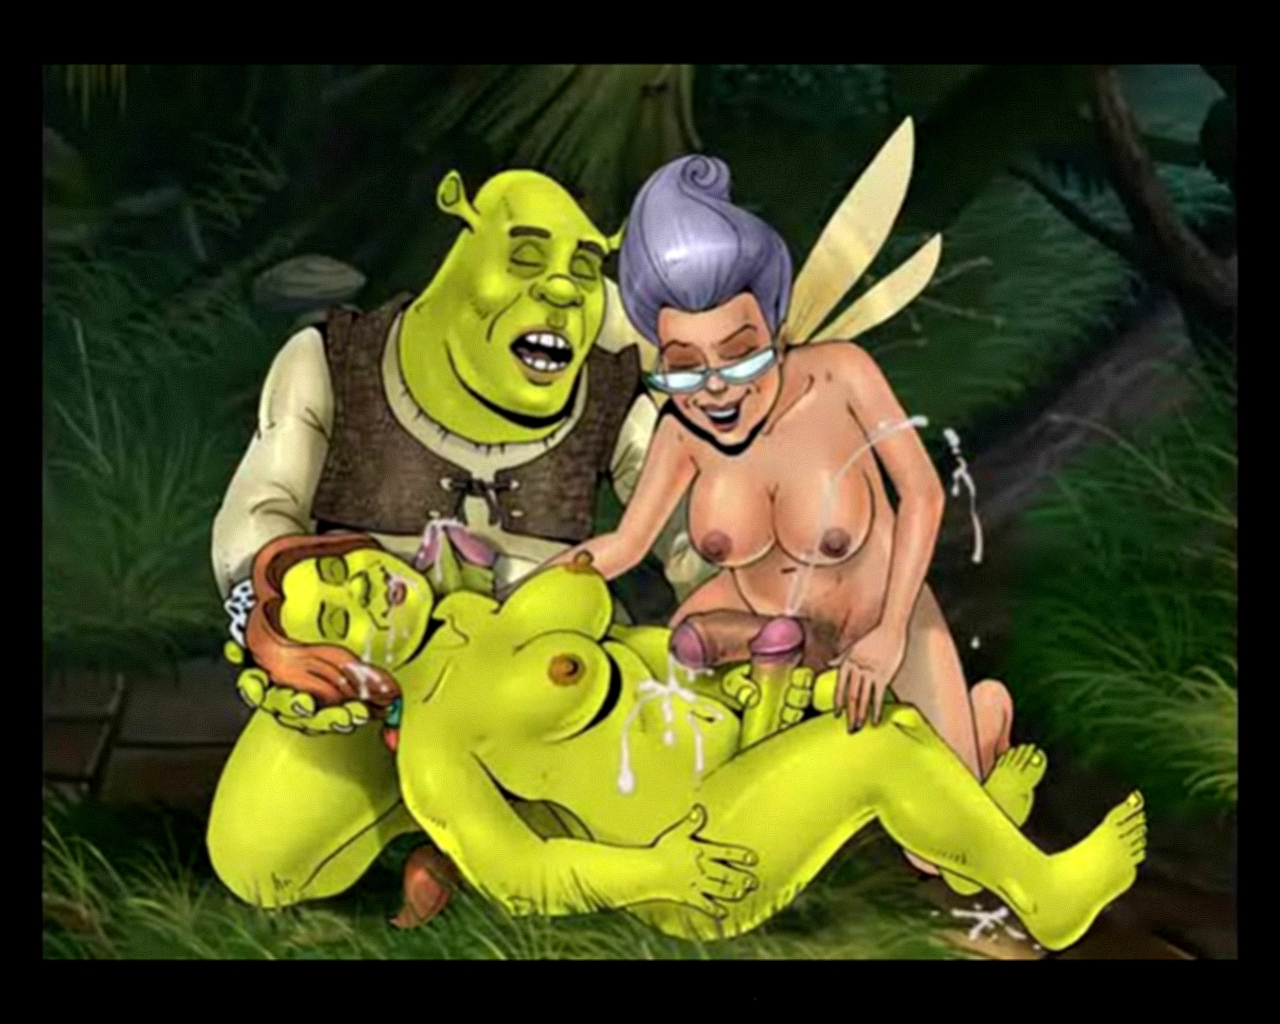 Shrek porno videos nude galleries